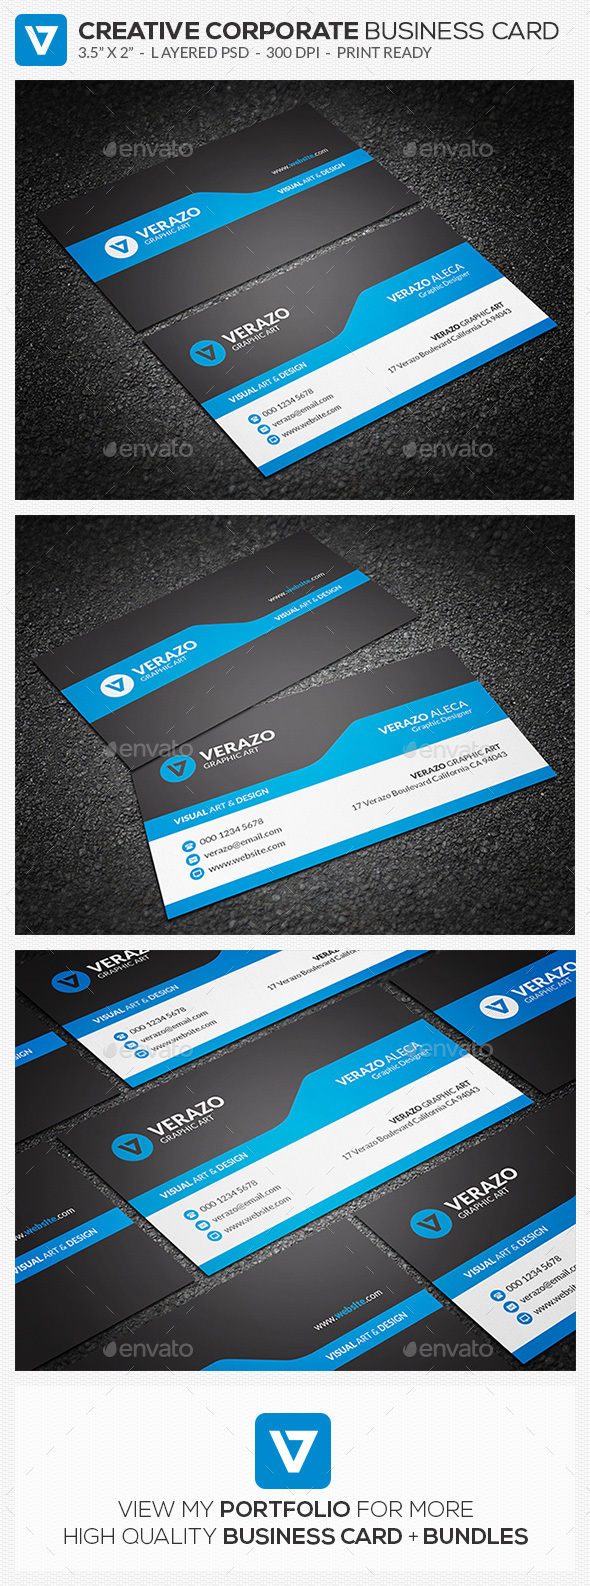 Modern corporate business card by verazo graphicriver modern corporate business card business cards print templates fbccfo Gallery